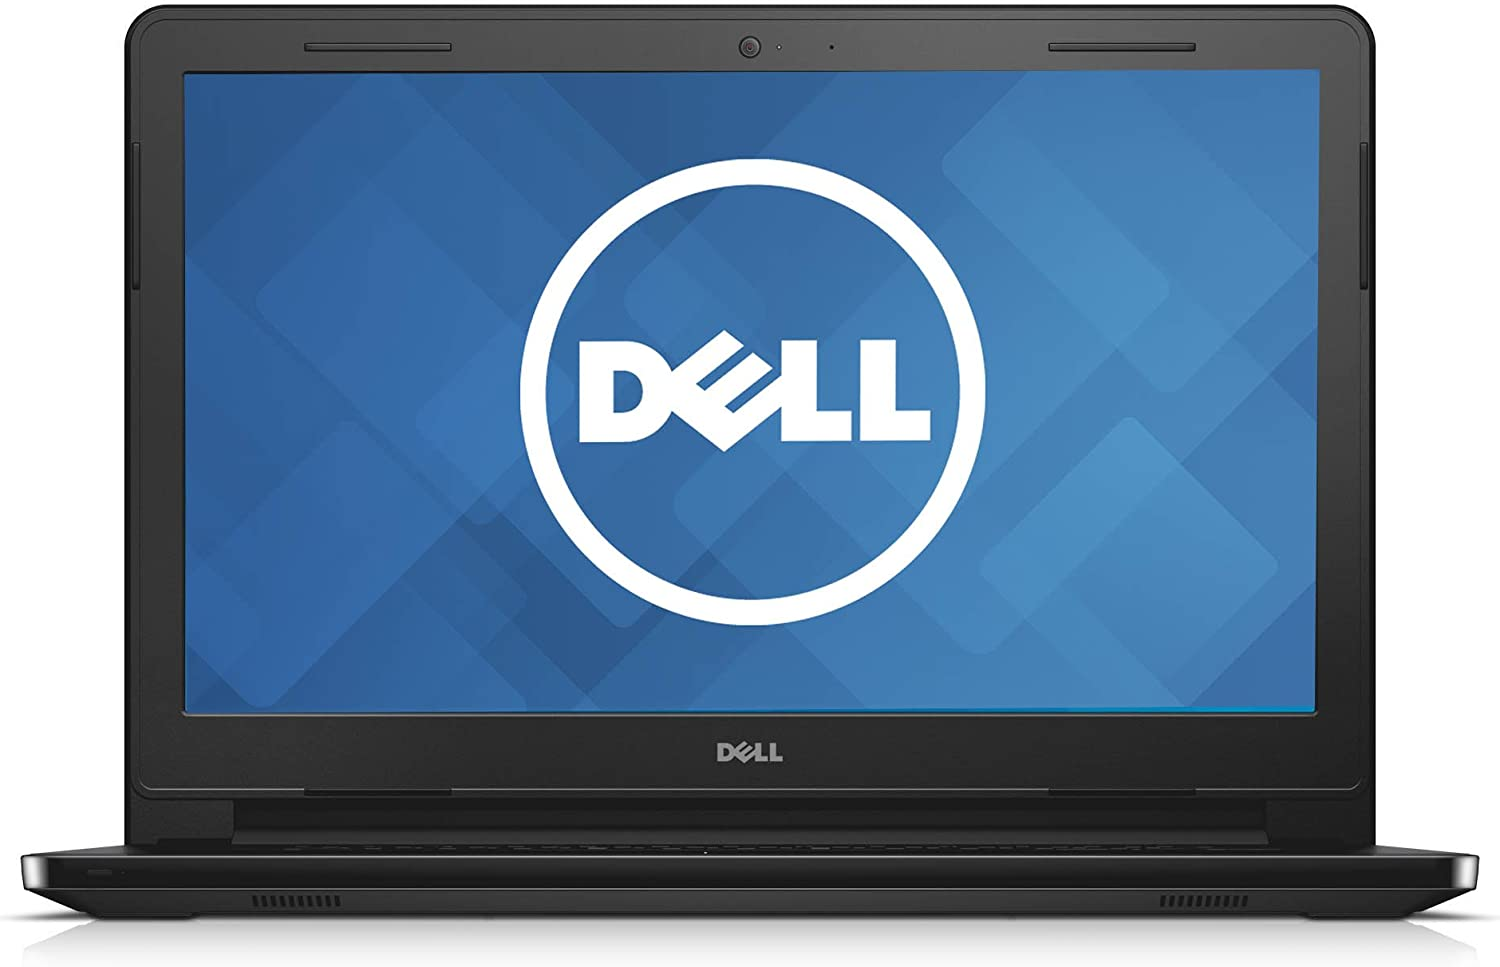 "Dell Inspiron 14 3000 Series i3451-1001BLK Laptop (Windows 8, Intel Celeron N2840 2.16 GHz, 14"" LED-lit Screen, Storage: 500 GB, RAM: 2 GB) Black"